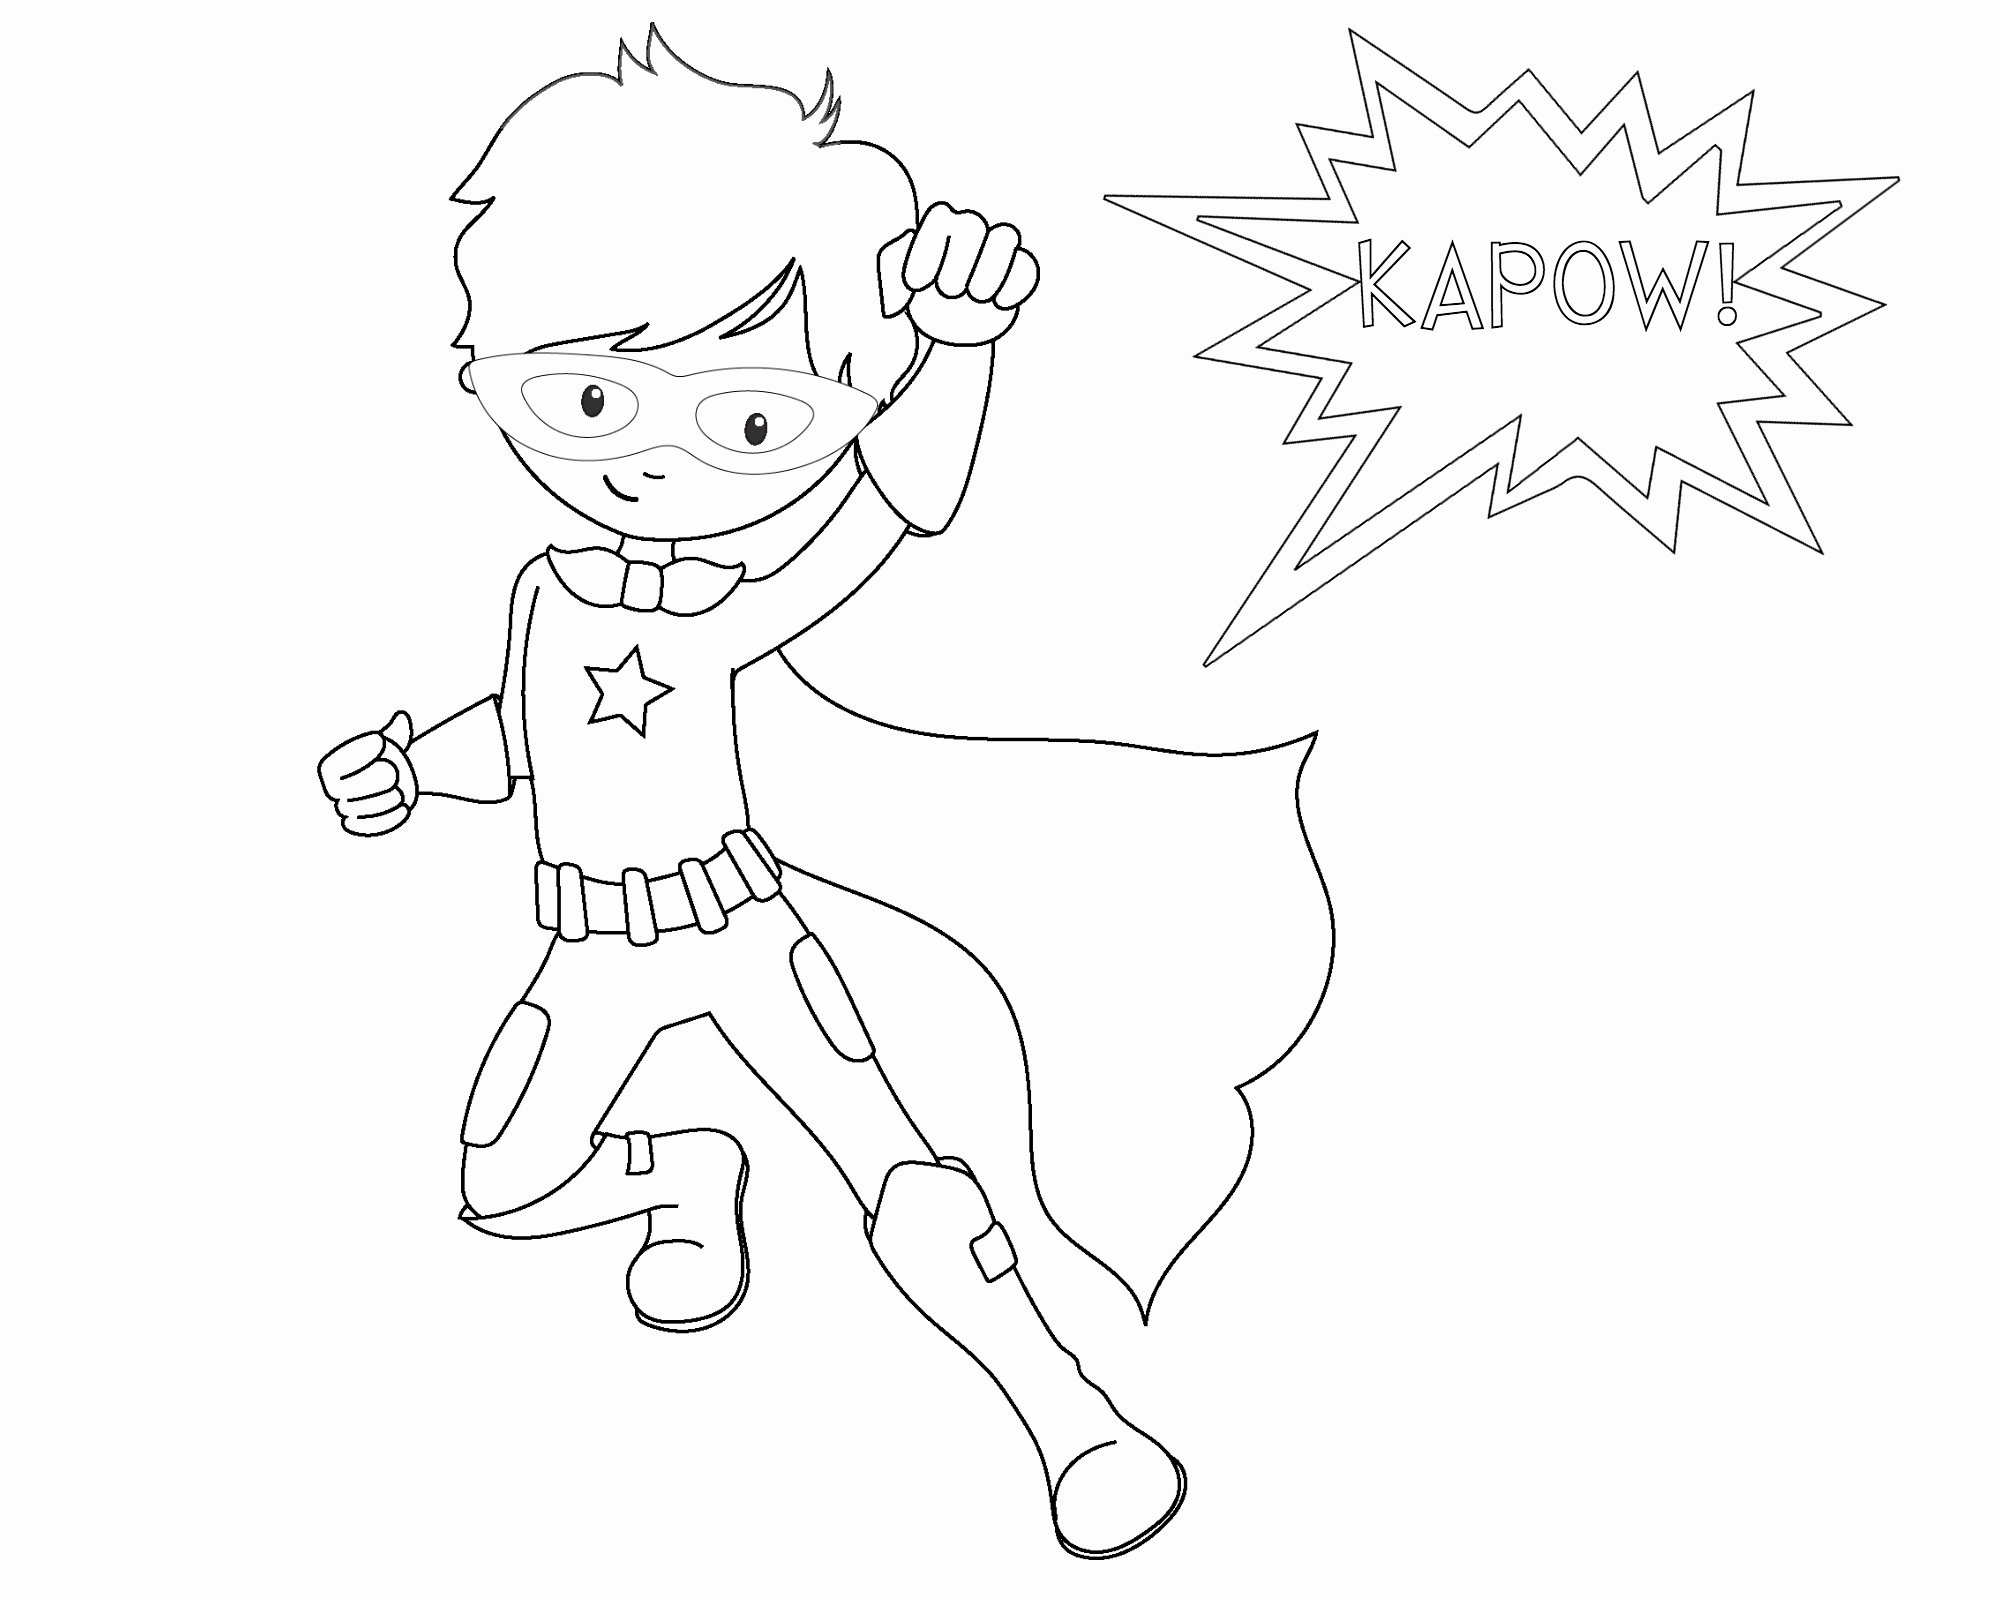 Super Hero Coloring Page Elegant Free Printable Superhero Coloring Sheets for Kids Crazy Little Projects